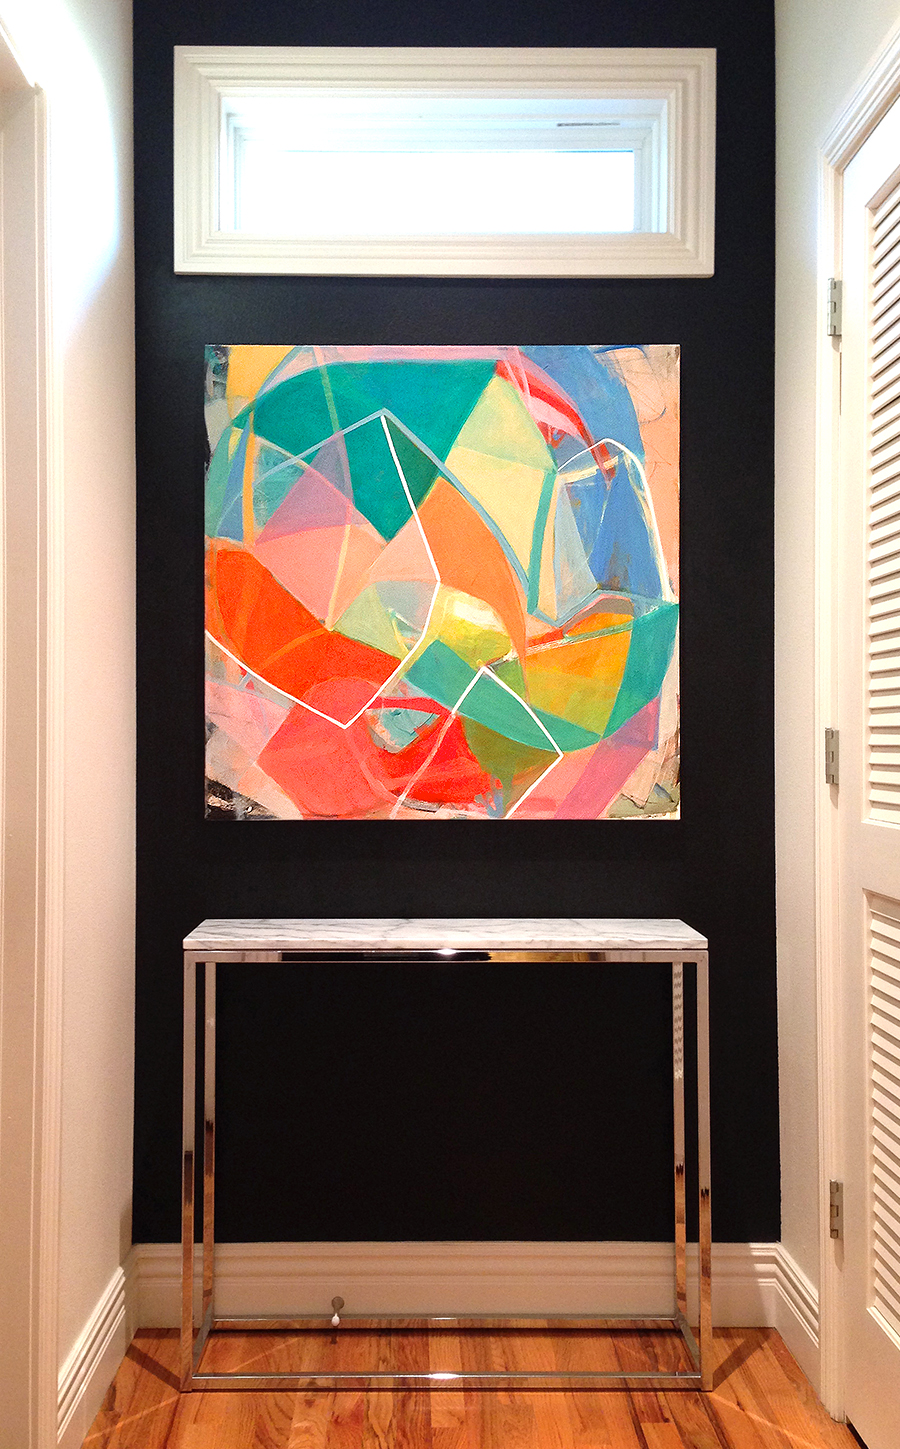 heidi-carlsen-rogers-abstract-expressionist-painting-orange-teal